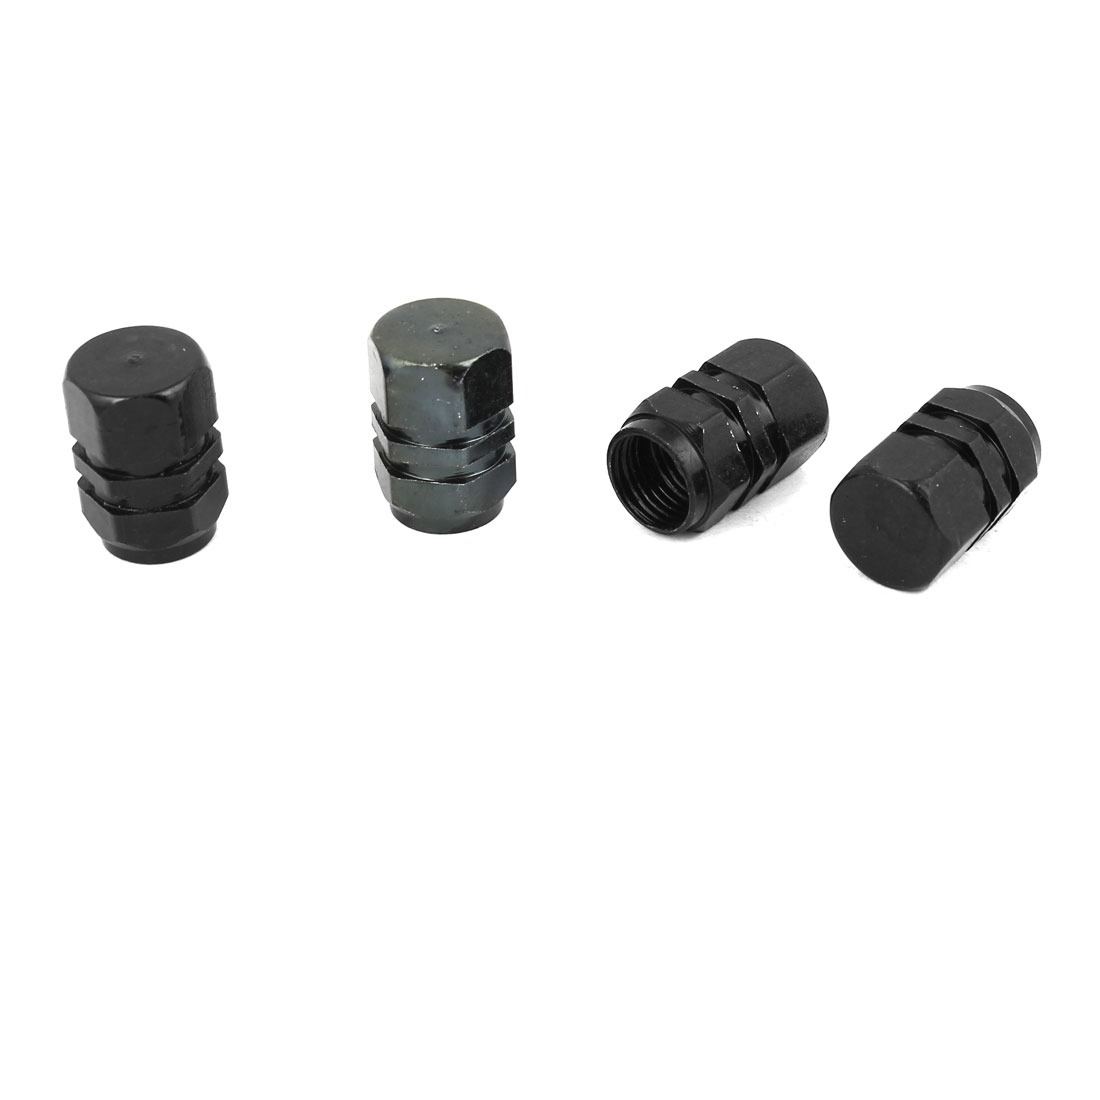 4 Pcs Car Black Hexagon Shape Alloy 7mm Inner Dia Tire Valve Protector